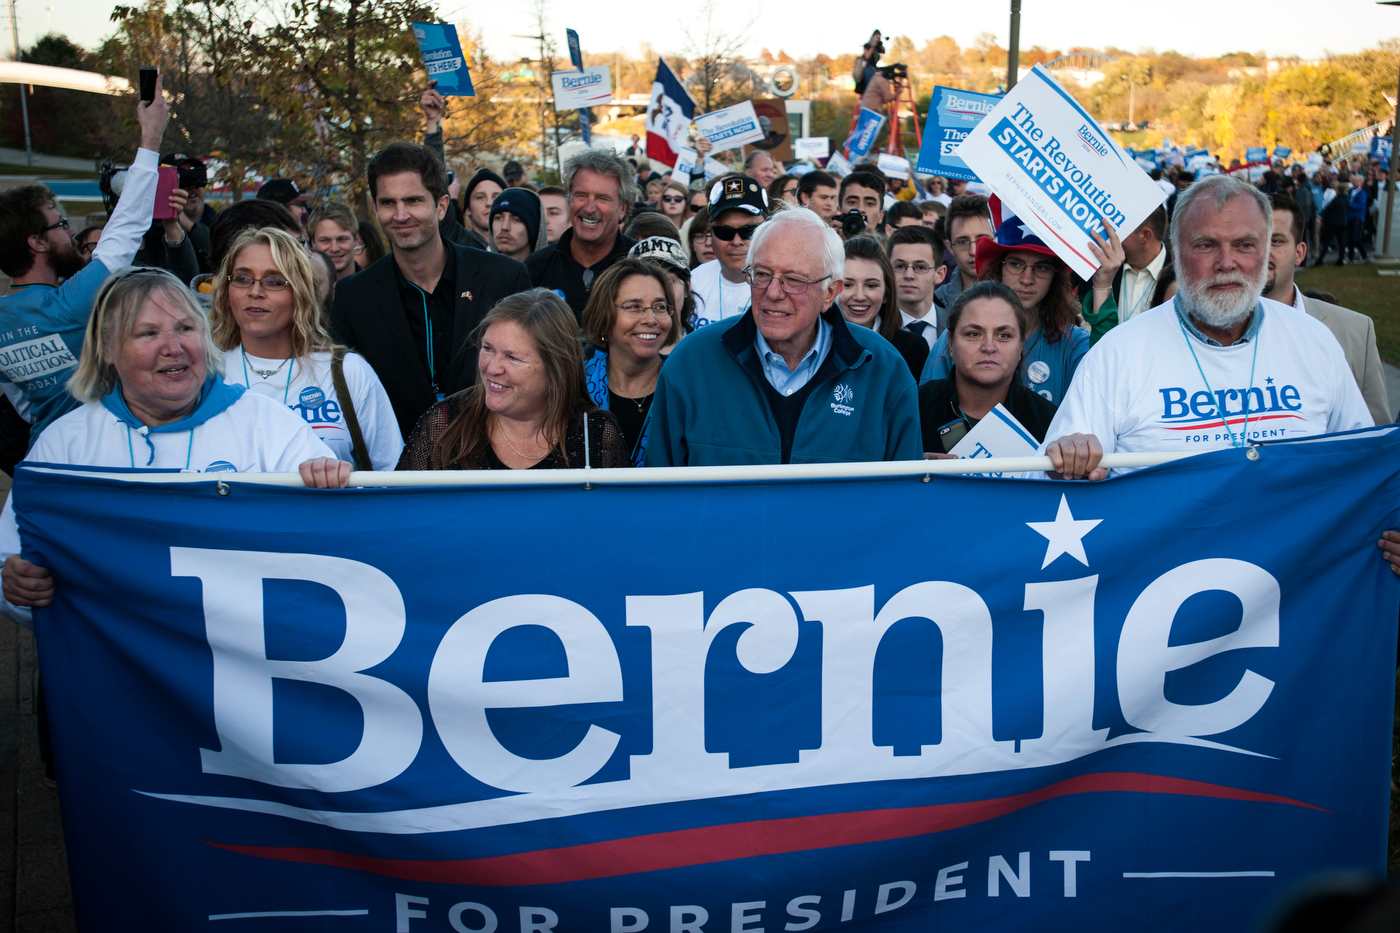 Democratic presidential candidate Sen. Bernie Sanders marches with supporters en route to the Jefferson-Jackson dinner in Des Moines.